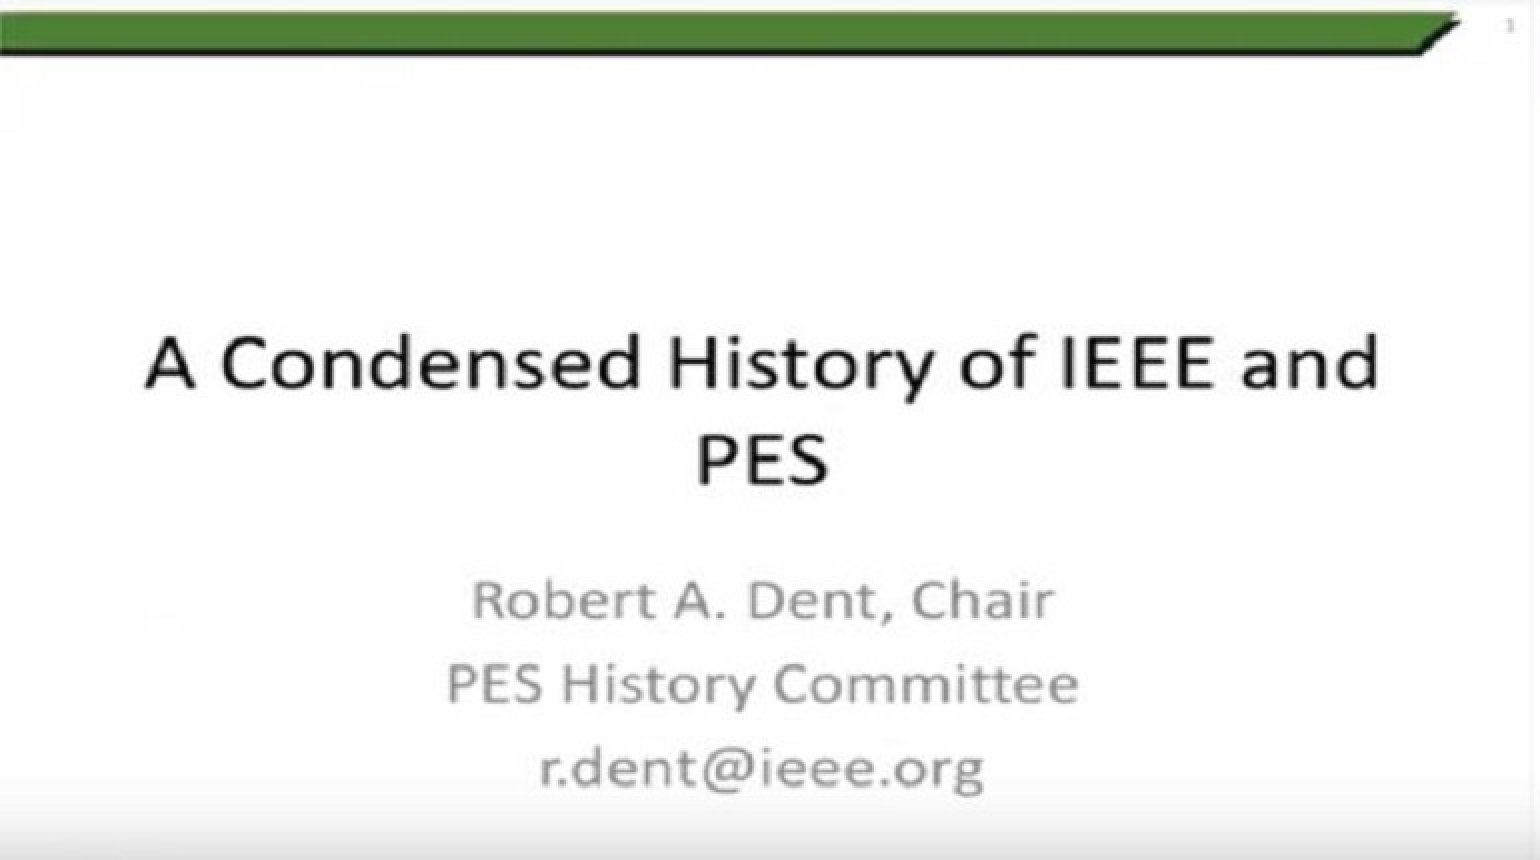 A Condensed History of IEEE and PES